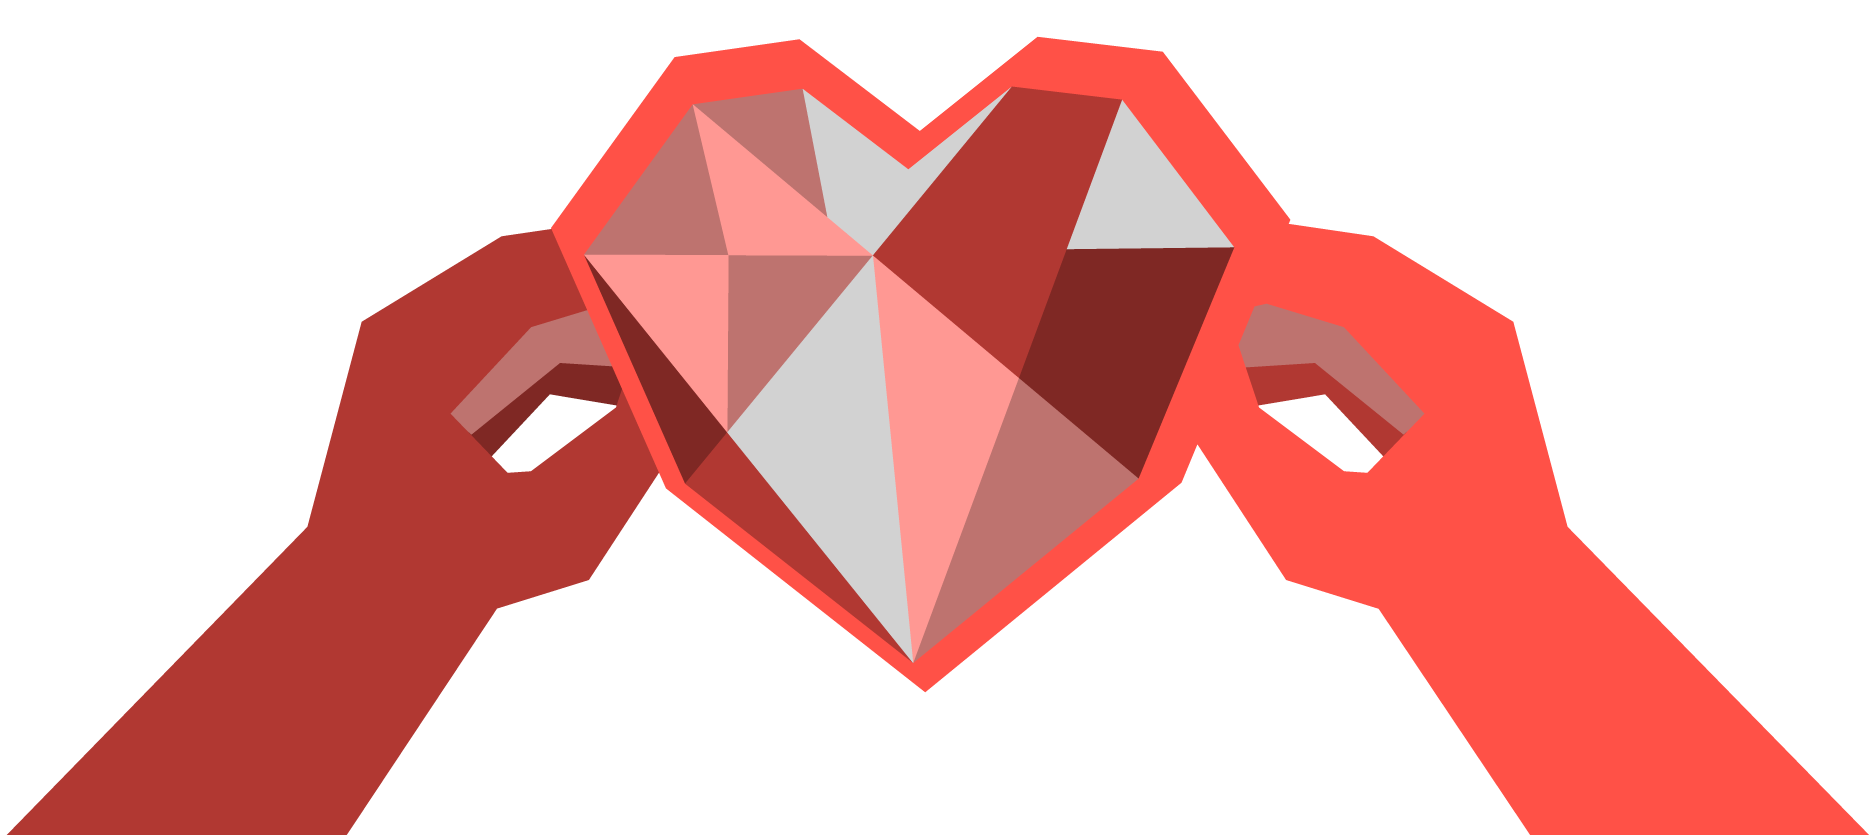 An illustration of two hands holding a bedazzled heart